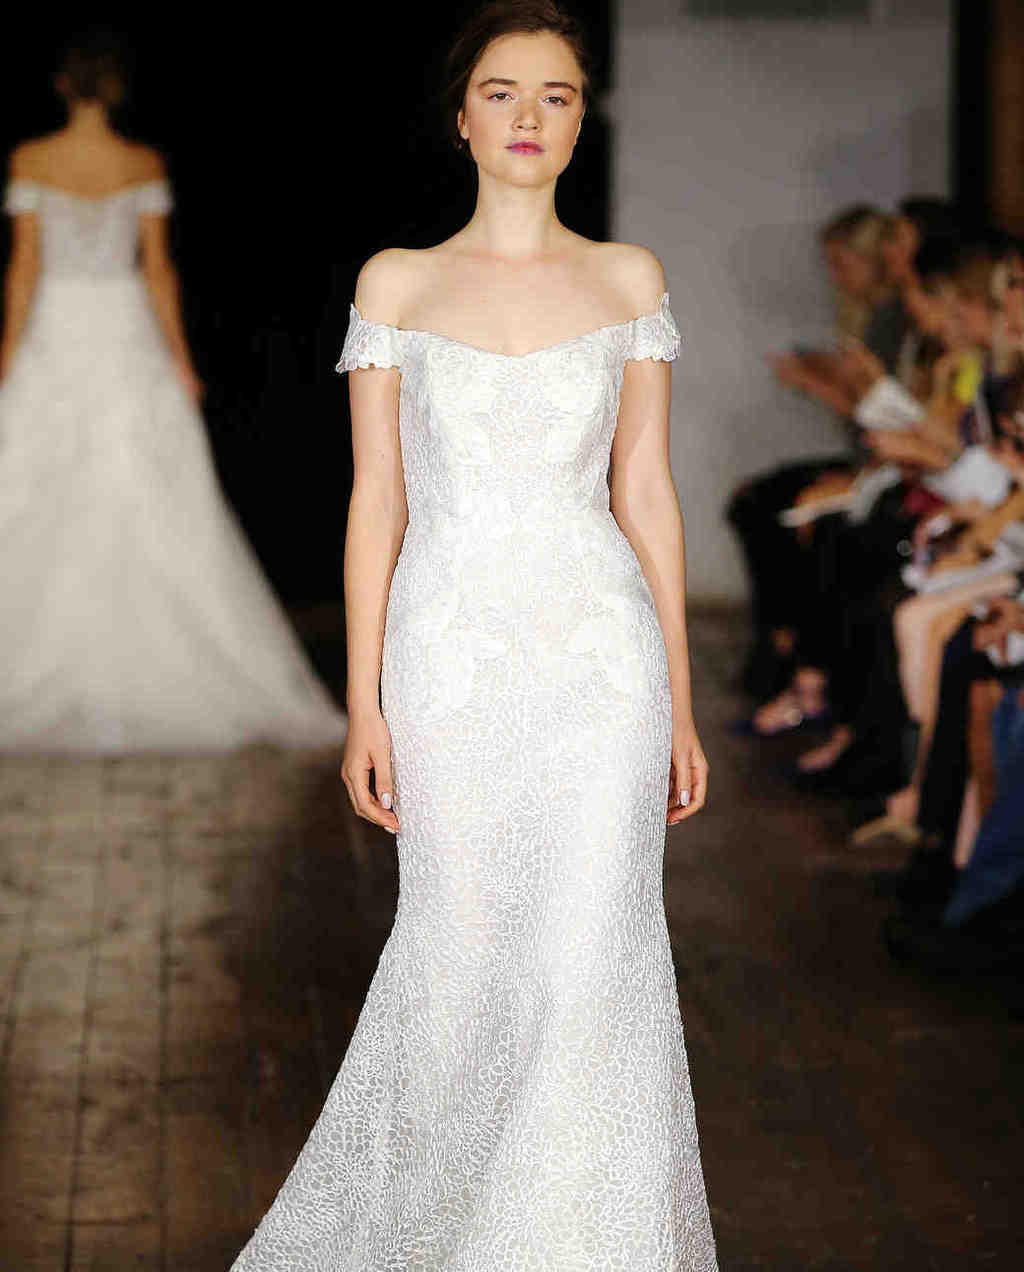 Rivini-wedding-dress-fall2017-62033510-020_vert